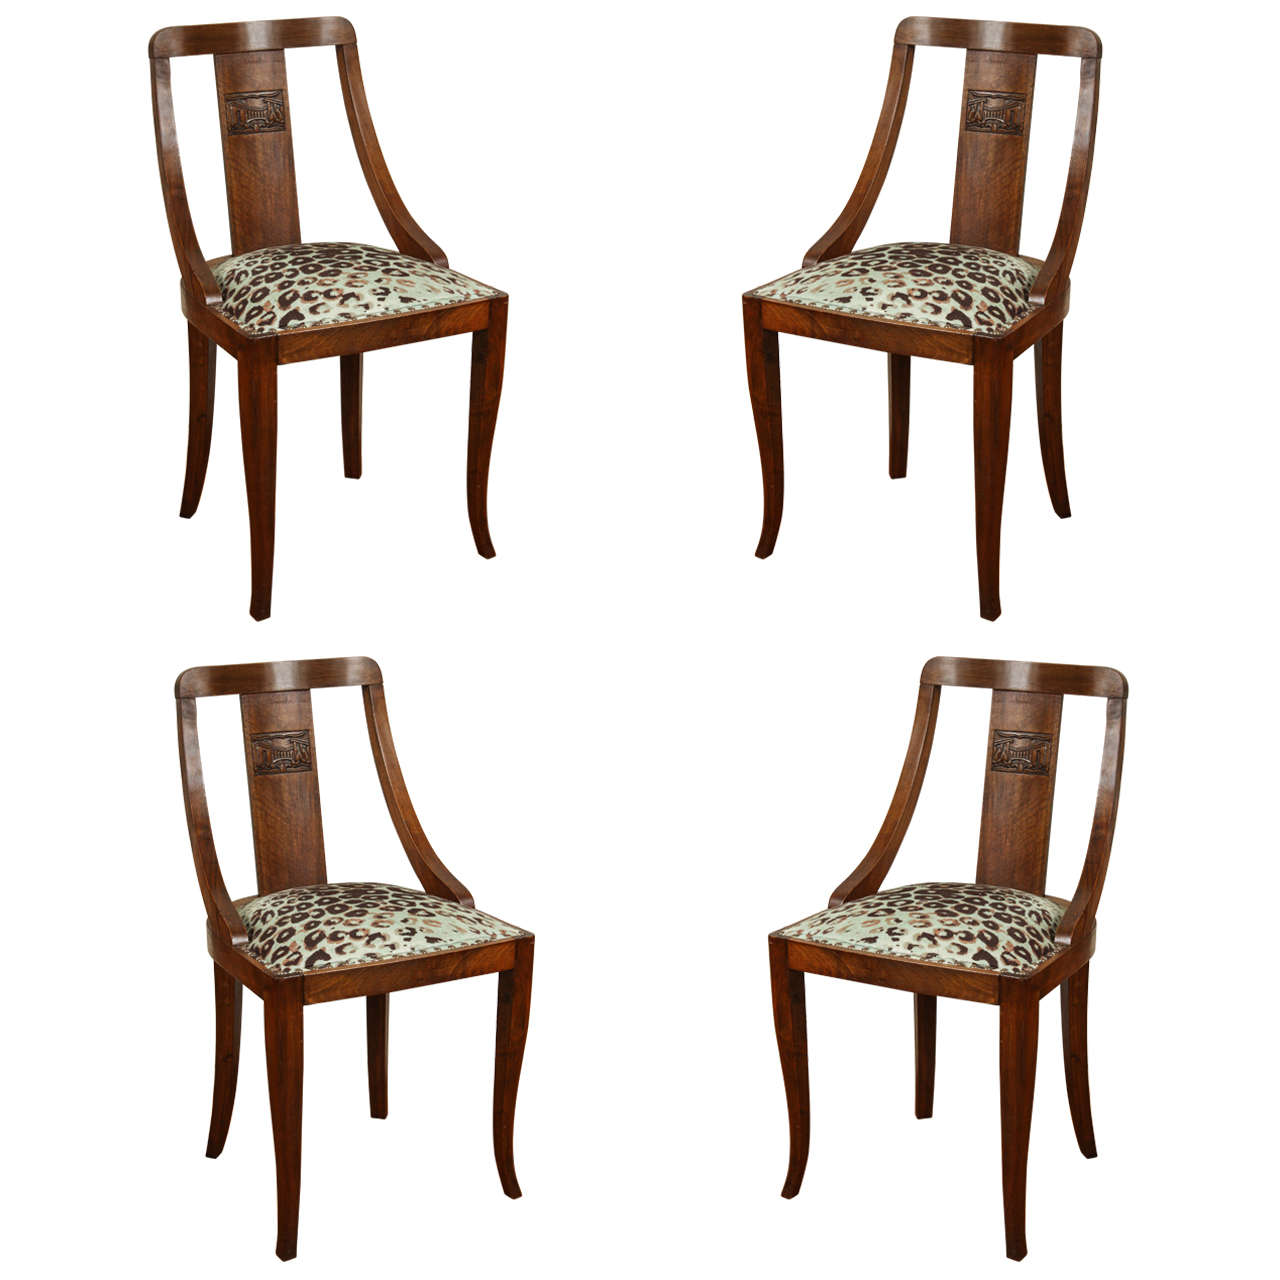 Exquisite Set of Four Dining Chairs